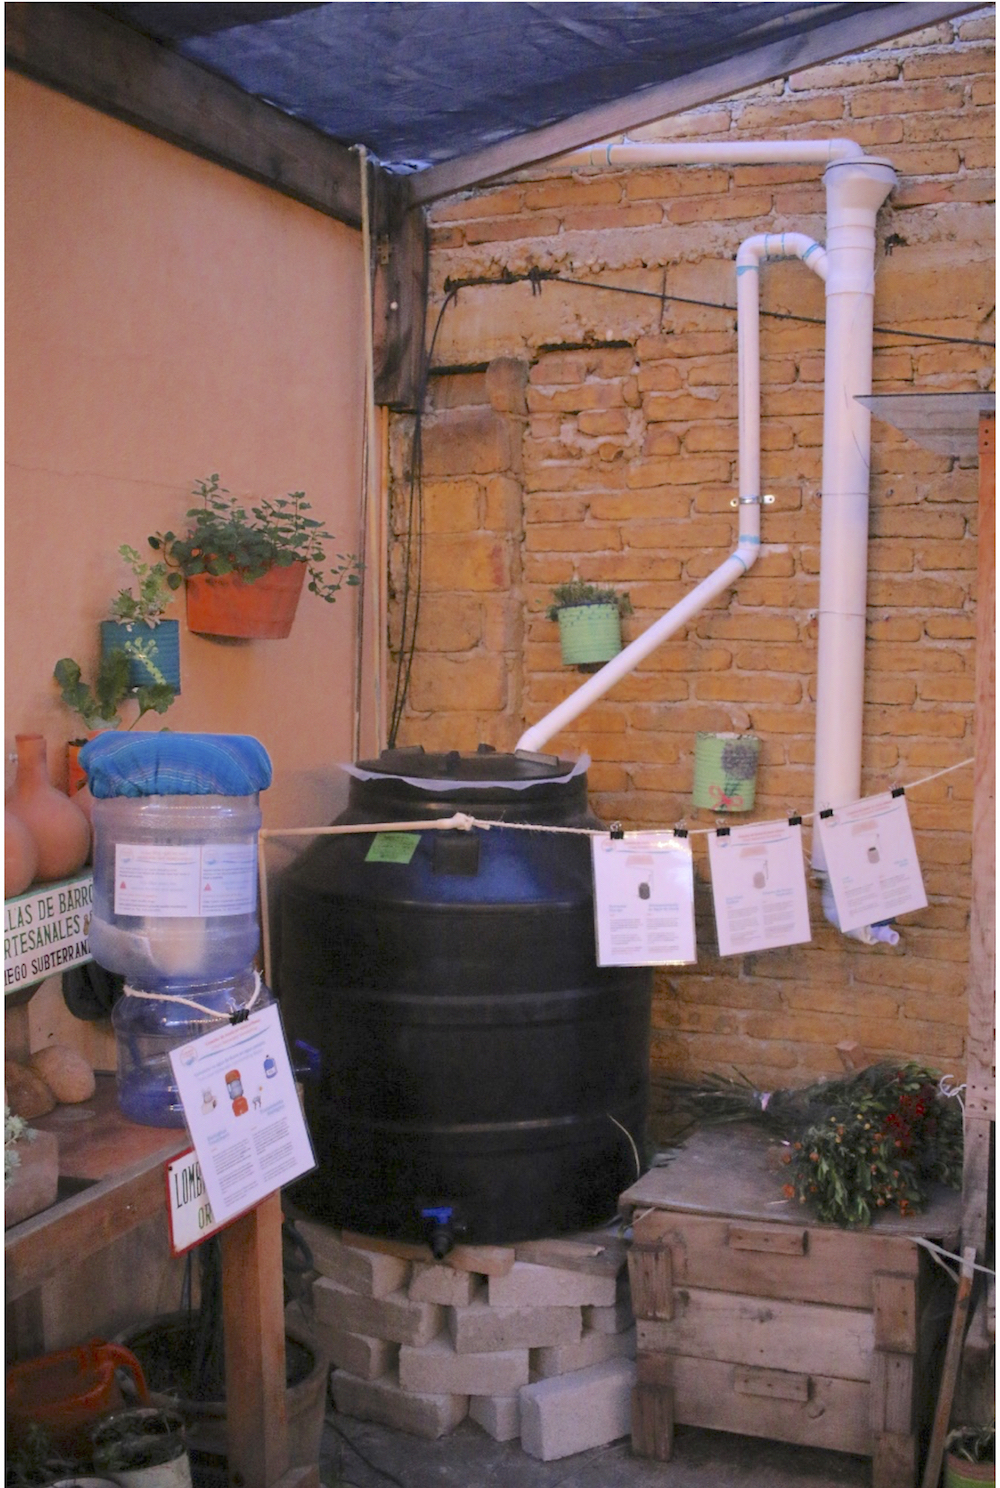 Small-scale urban rainwater harvesting system - utilizing our ceramic water filter for post-filtration -  located at Vía Orgánica in San Miguel de Allende, Gto, México.